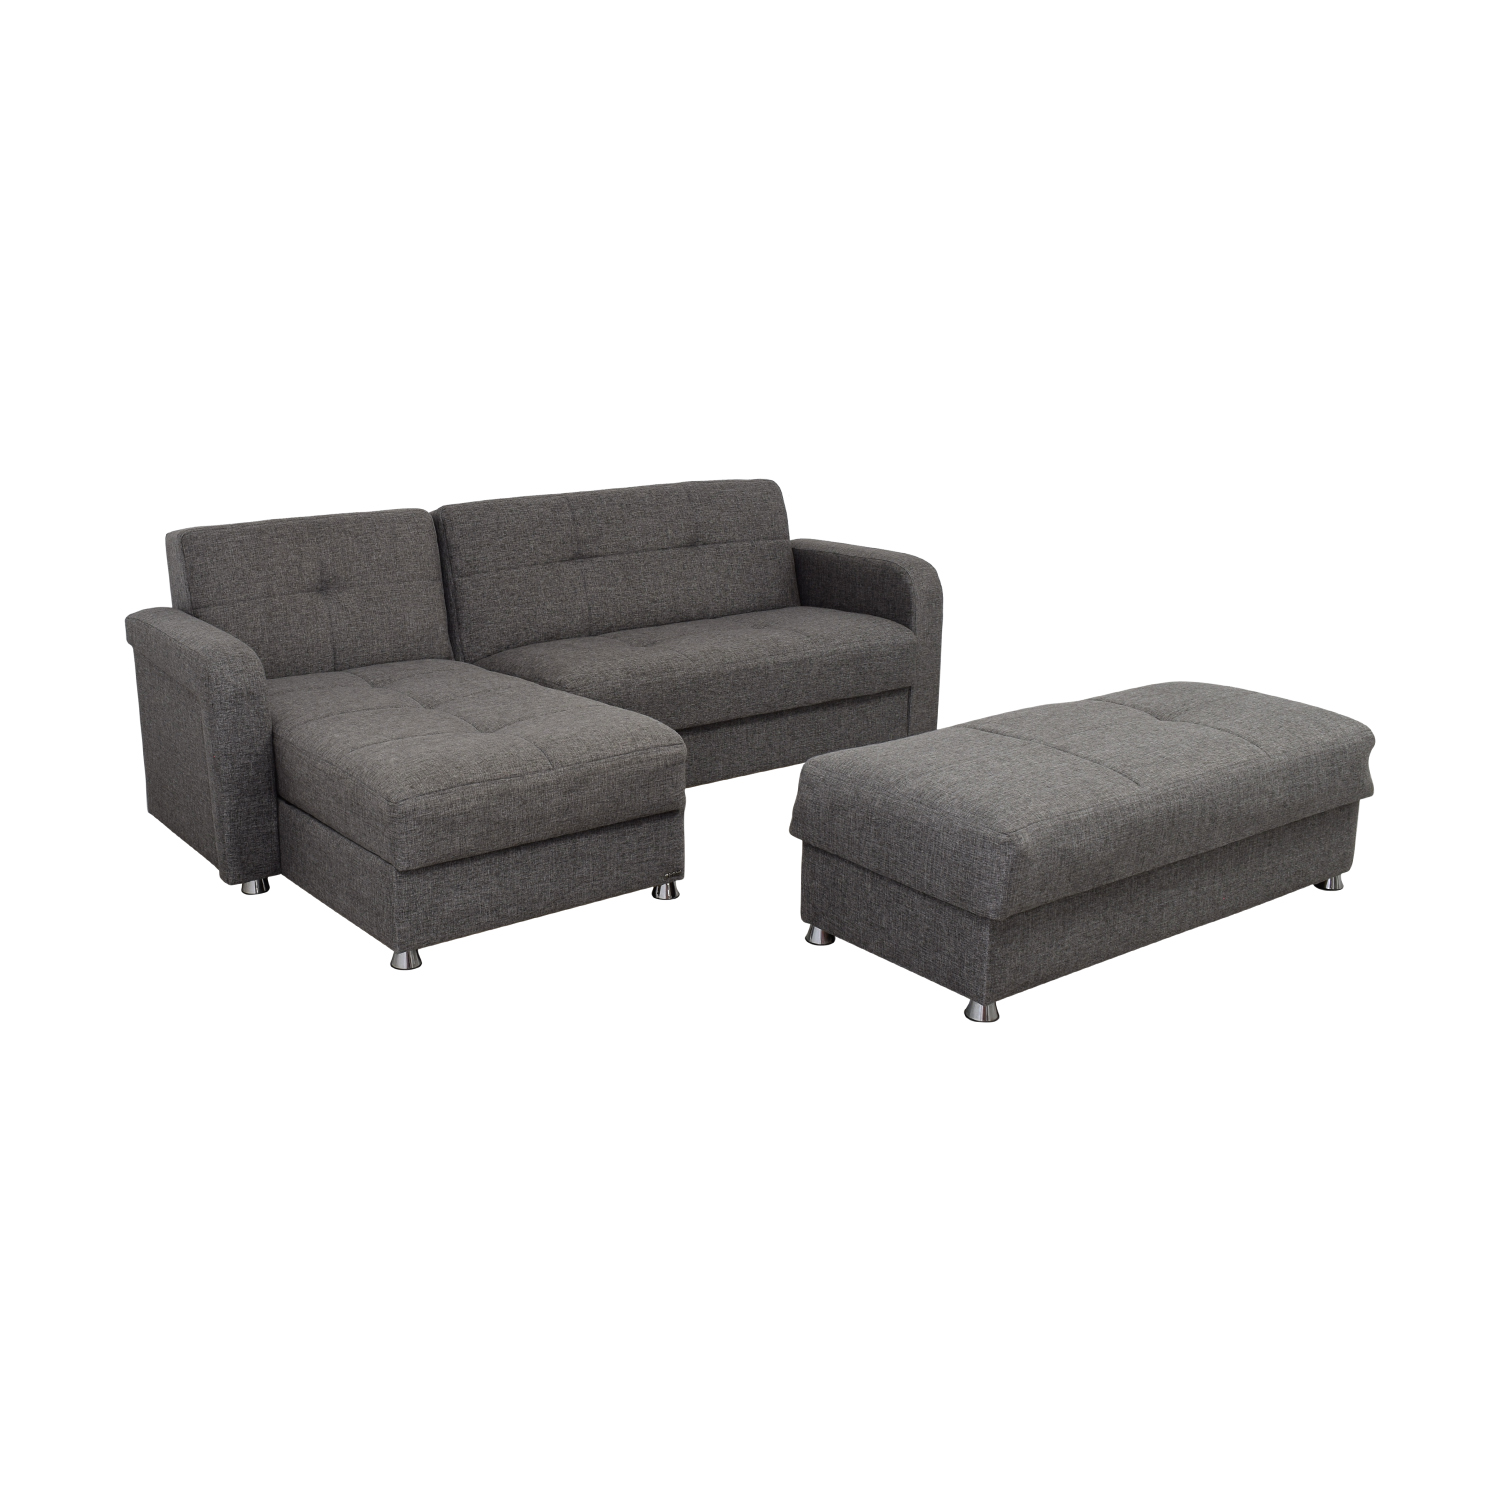 54% OFF - Istikbal Istikbal Grey Convertible Sectional Sofa with Ottoman  Bench / Sofas